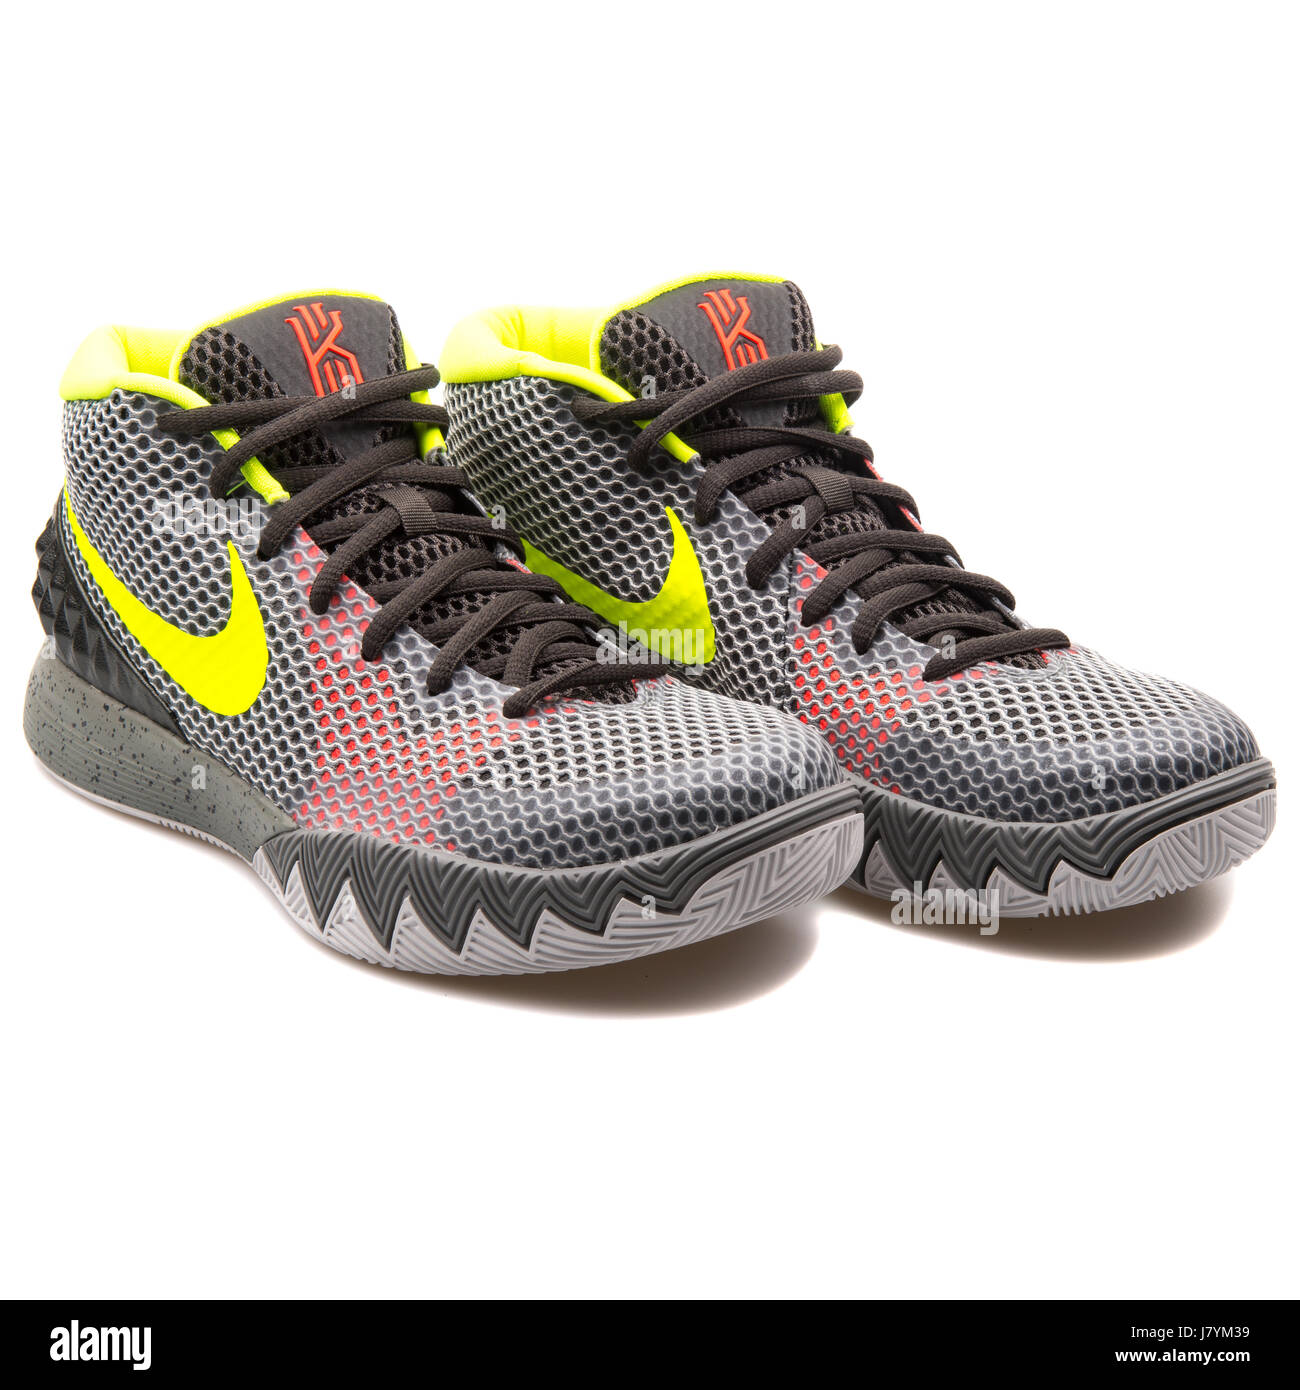 63fb6cde2fd1 Nike Kyrie 1 Men s Grey Basketball Sneakers - 705277-270 Stock Photo ...